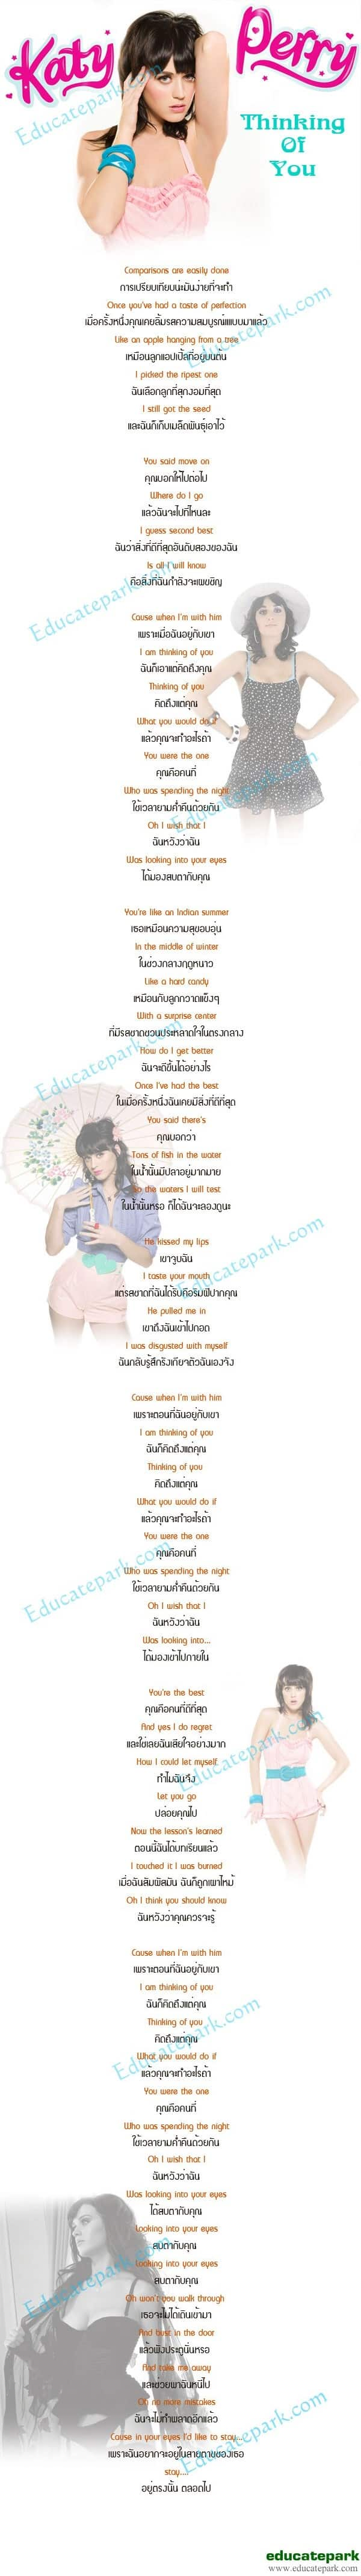 แปลเพลง Thinking Of You - Katy Perry